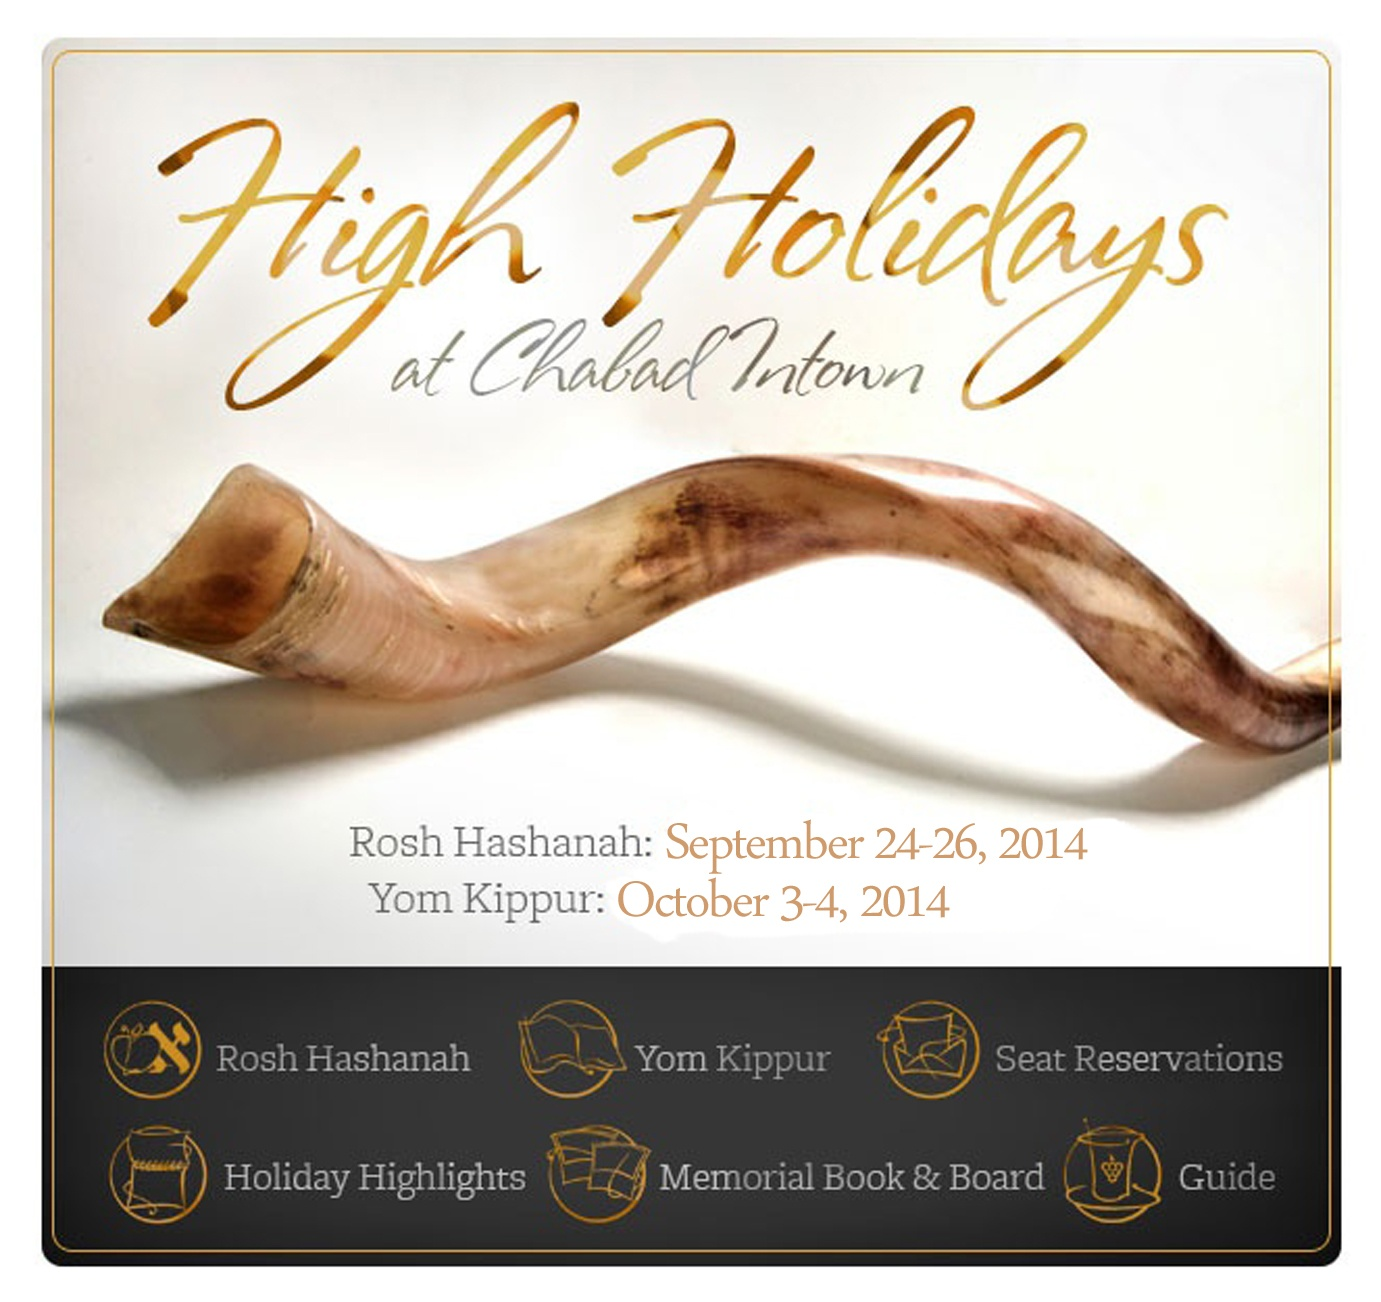 High Holidays with Chabad Intown